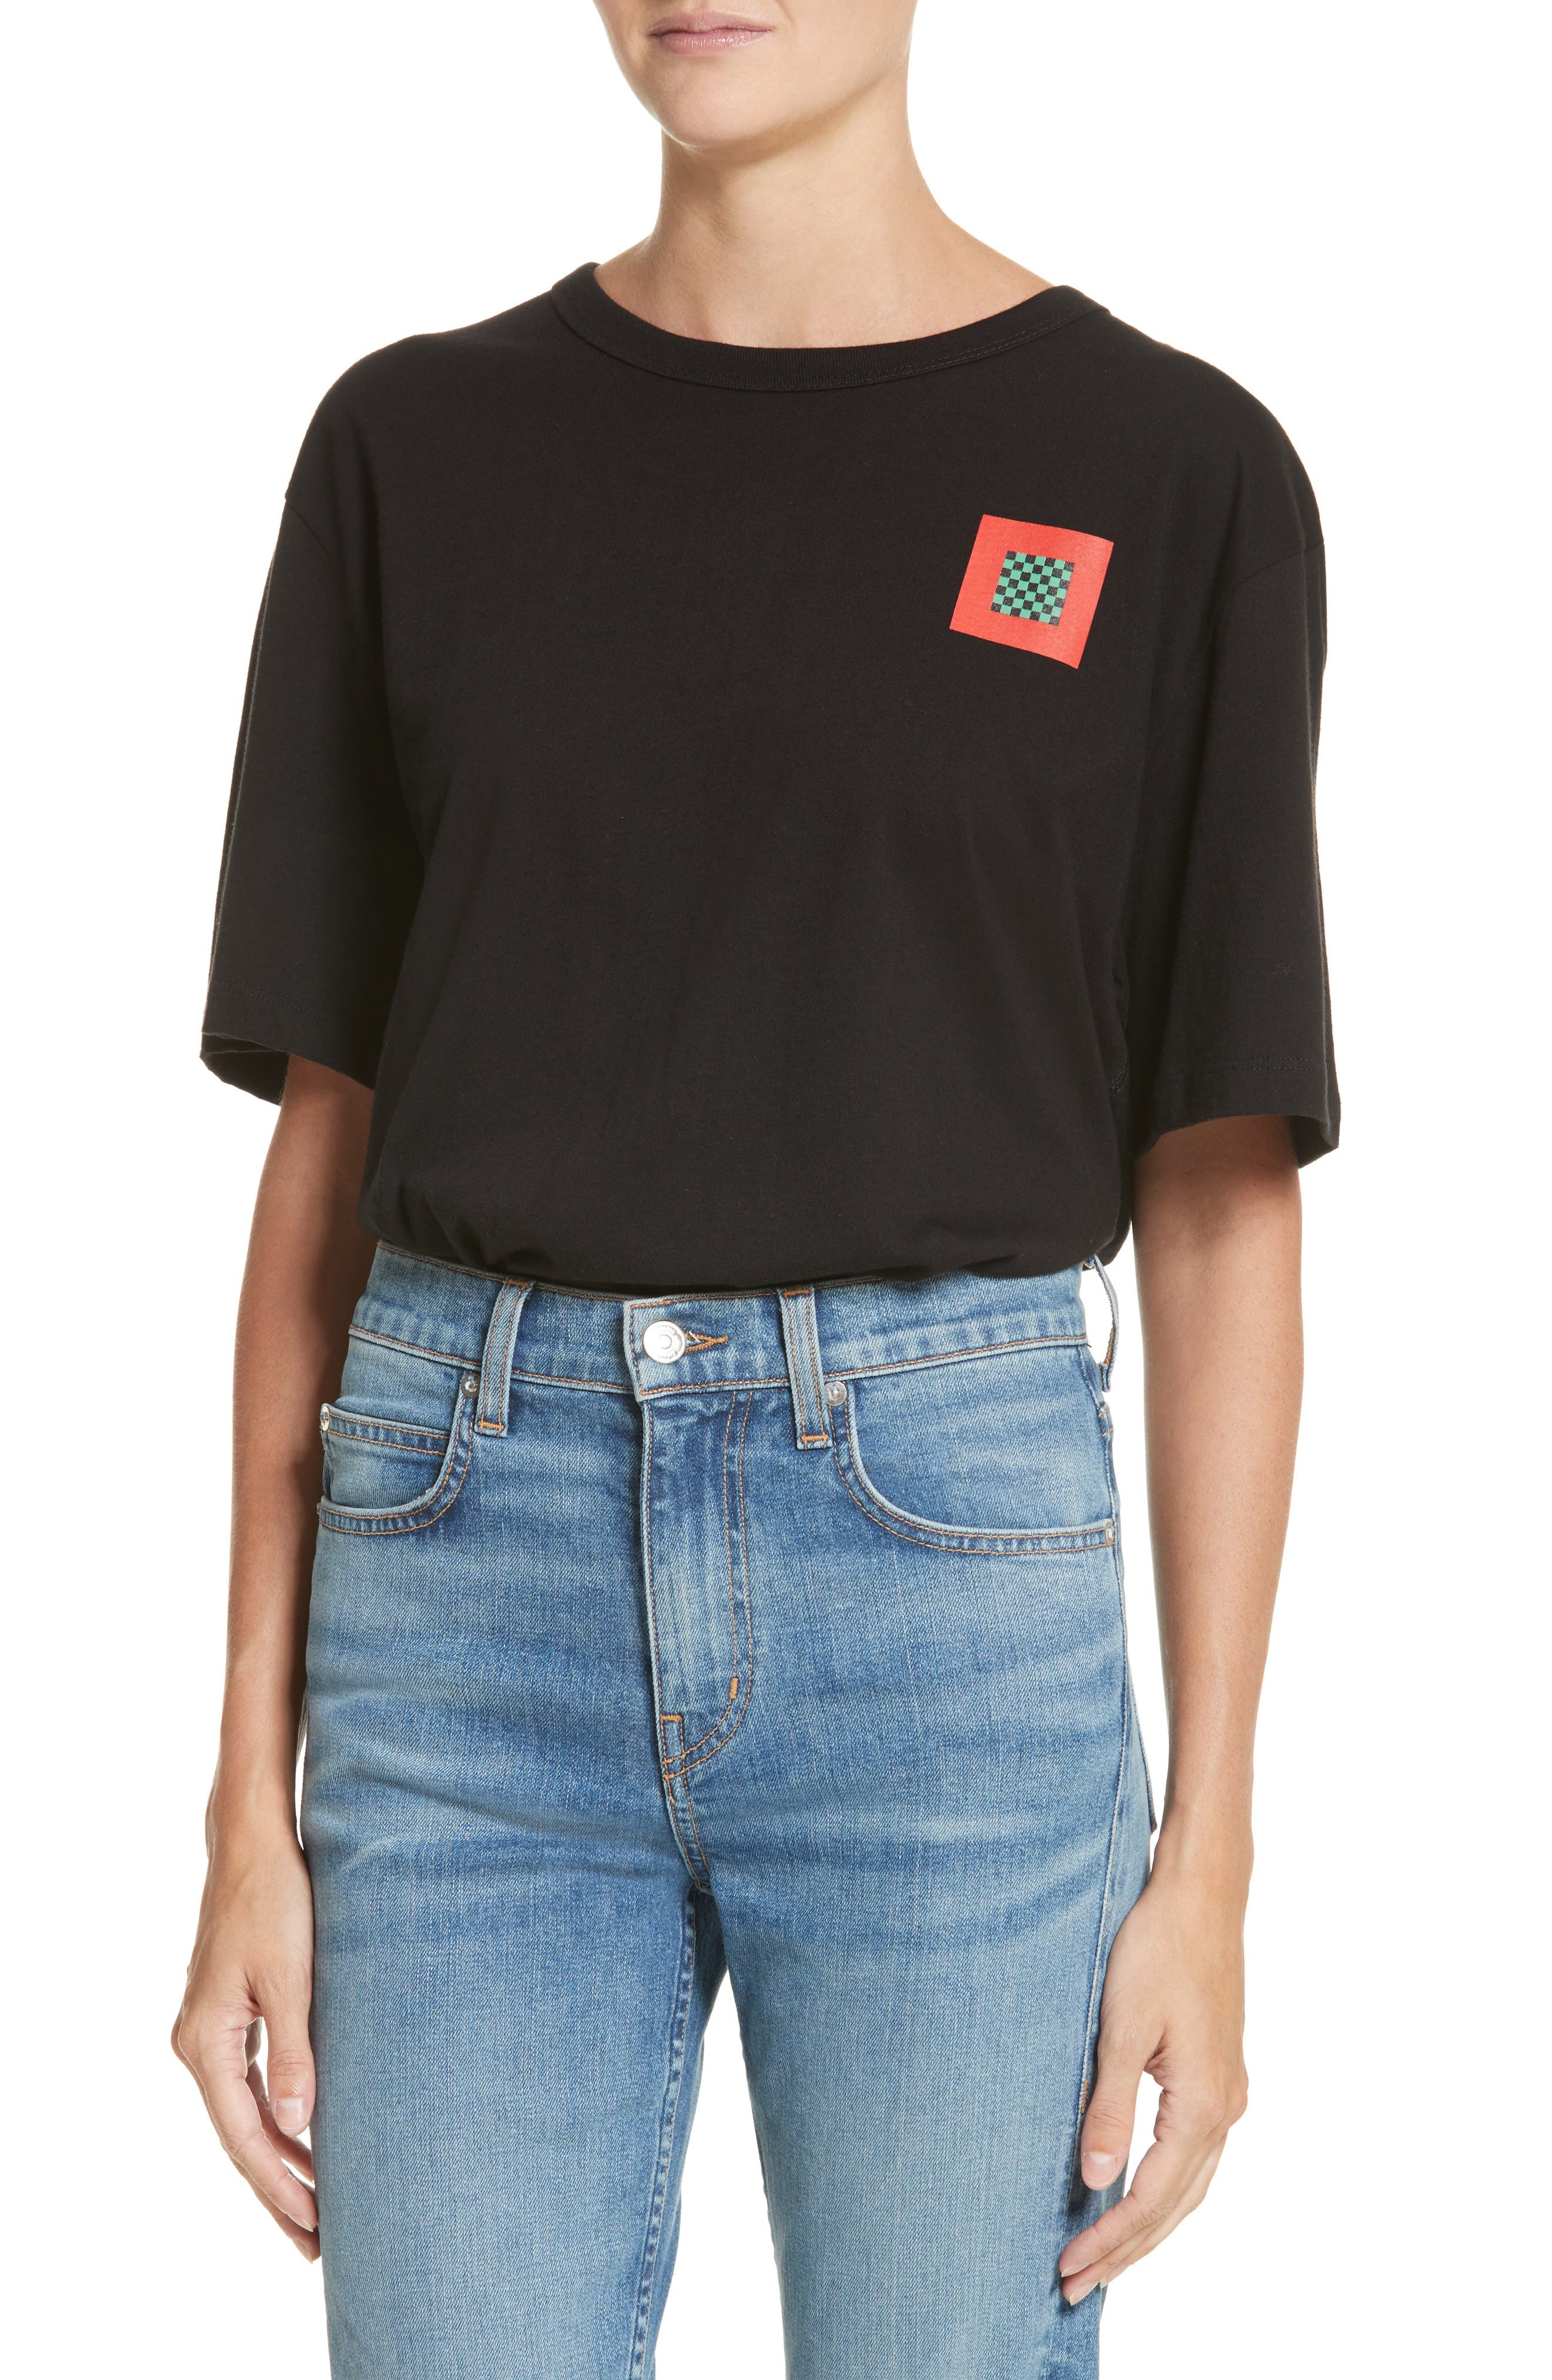 Main Image - Proenza Schouler PSWL Graphic Jersey Tee